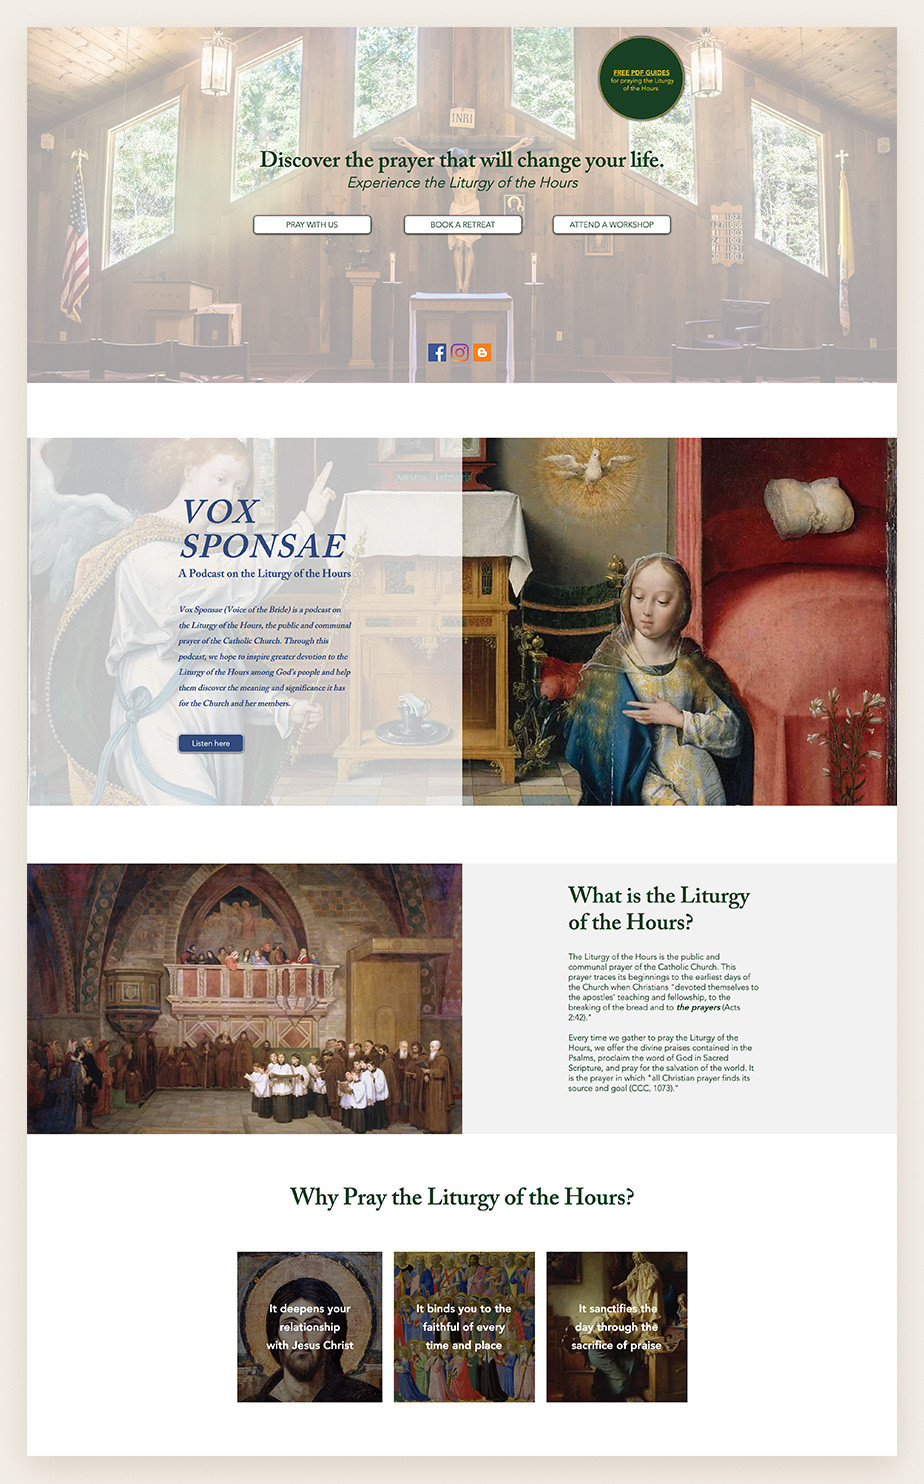 Best church websites example by St. Thomas More House of Prayer Church